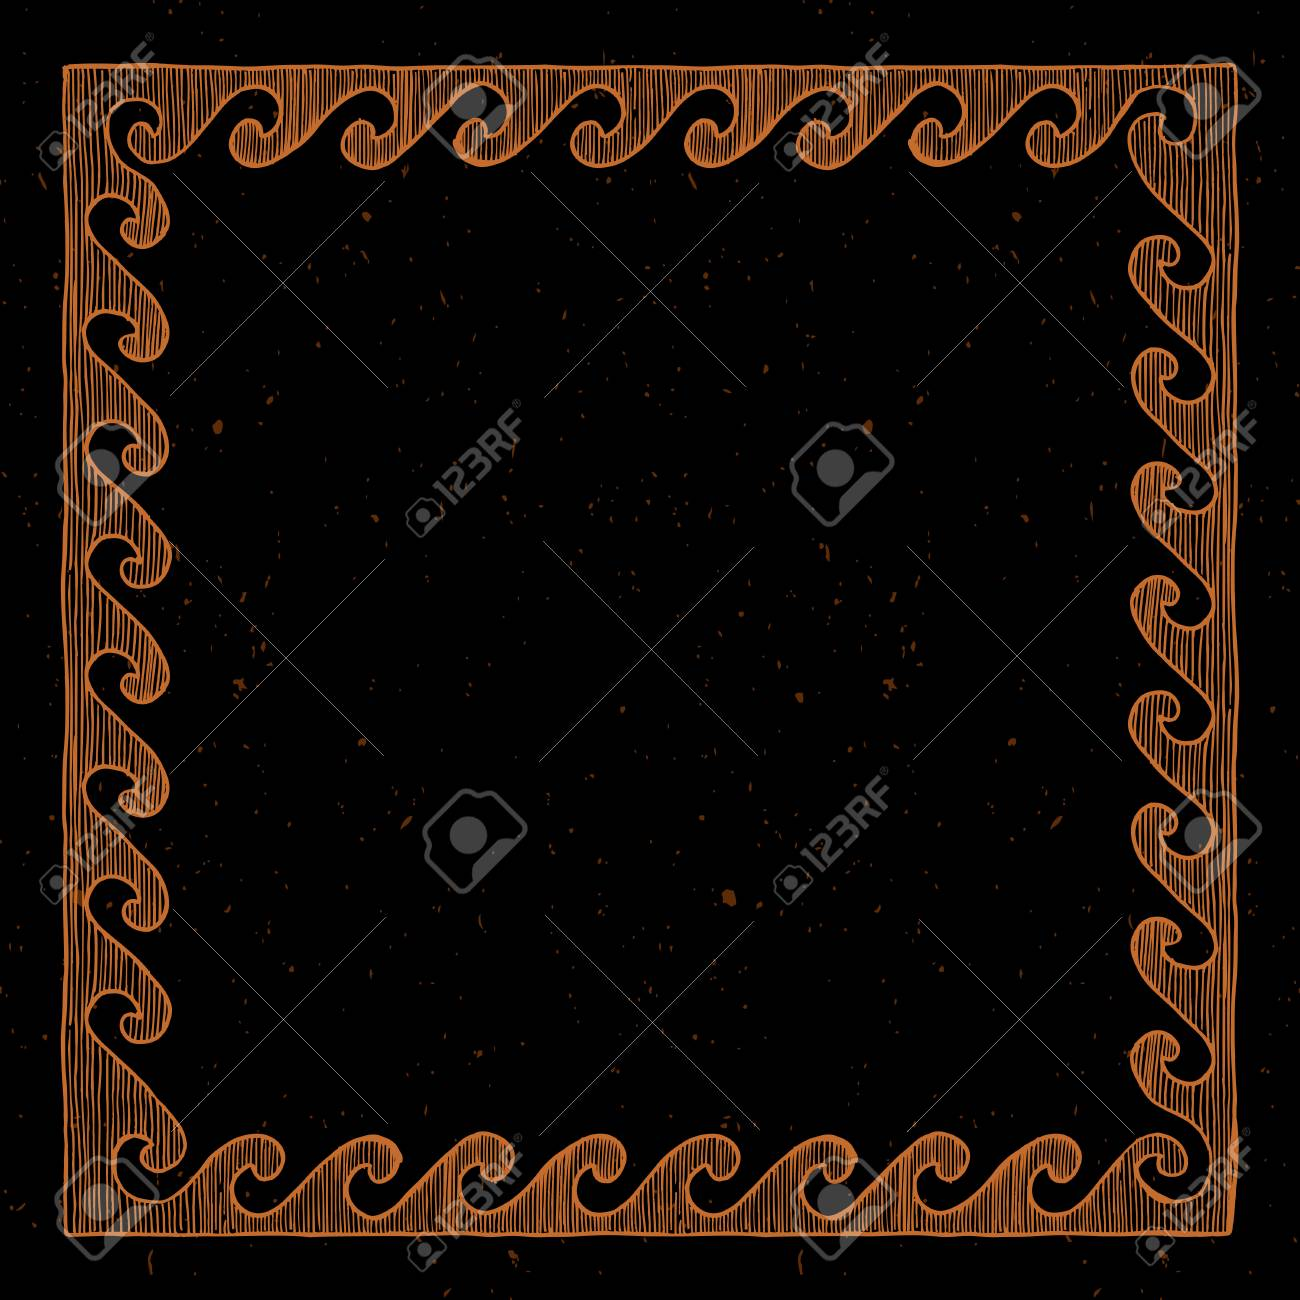 Tremendous Clay Tablet Vector Template With Ancient Greek Border In Red Figure Home Interior And Landscaping Transignezvosmurscom